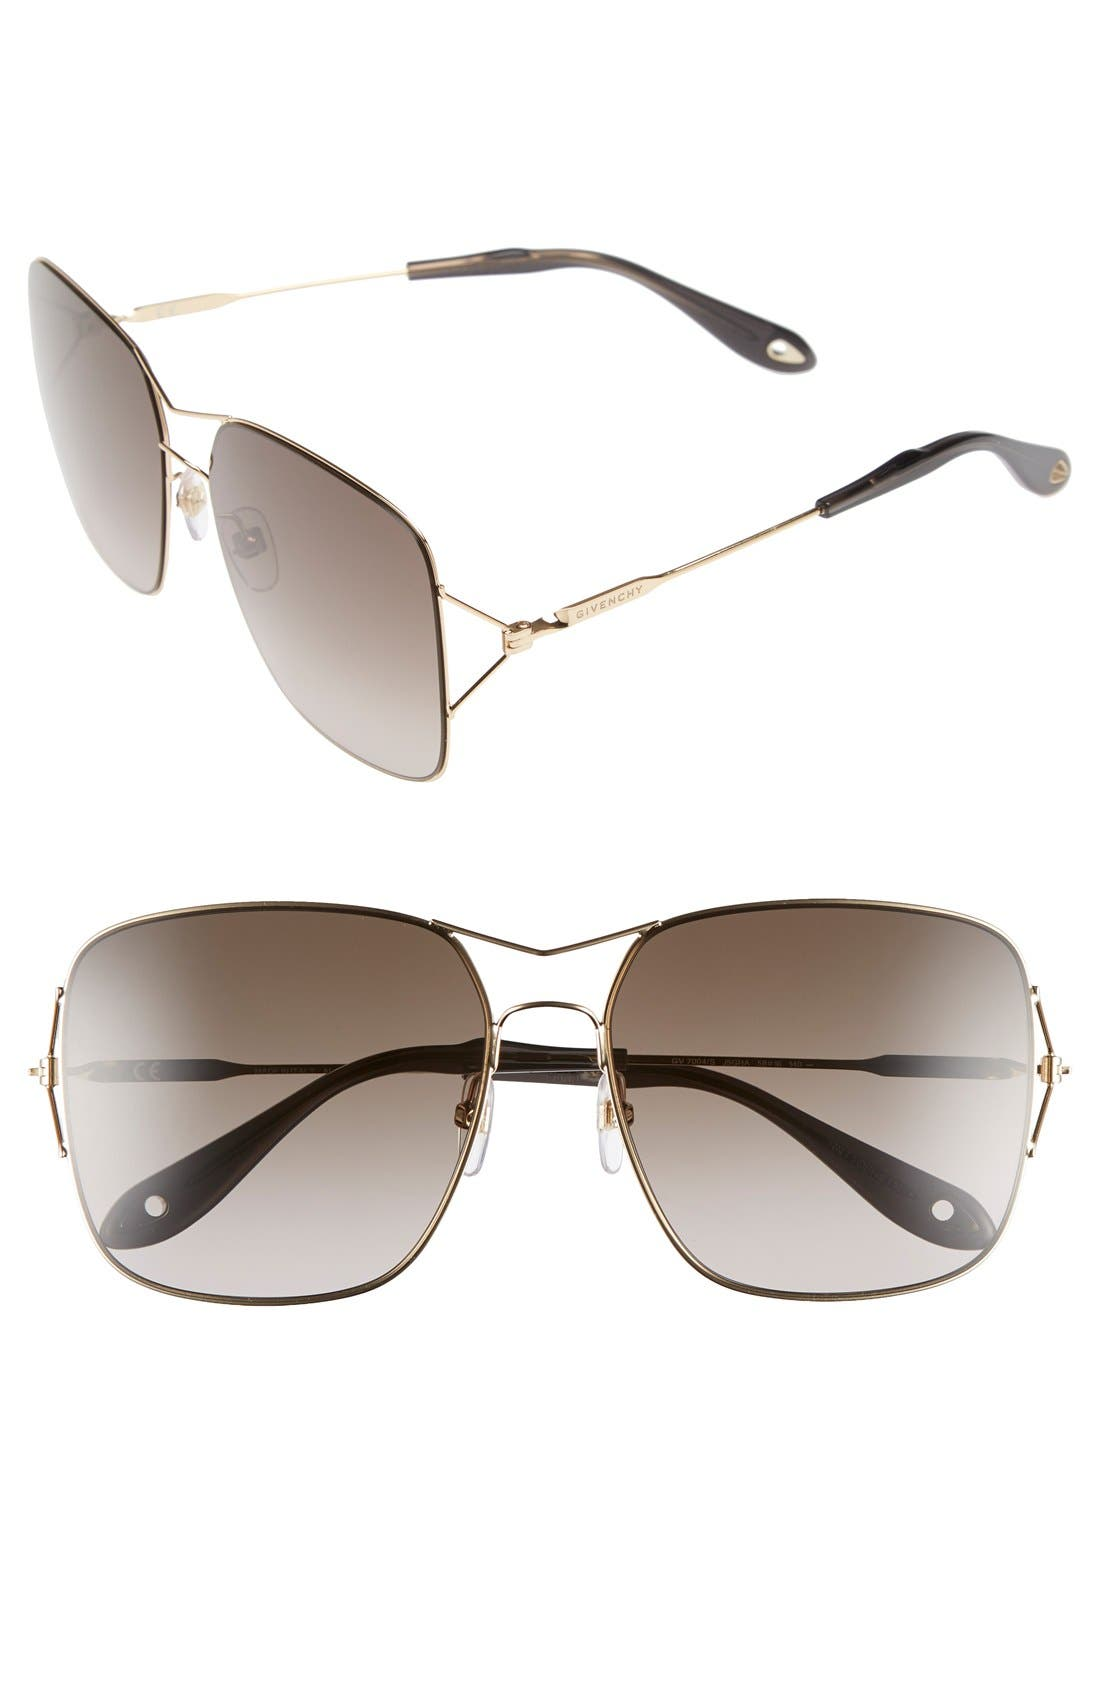 Alternate Image 1 Selected - Givenchy 58mm Sunglasses